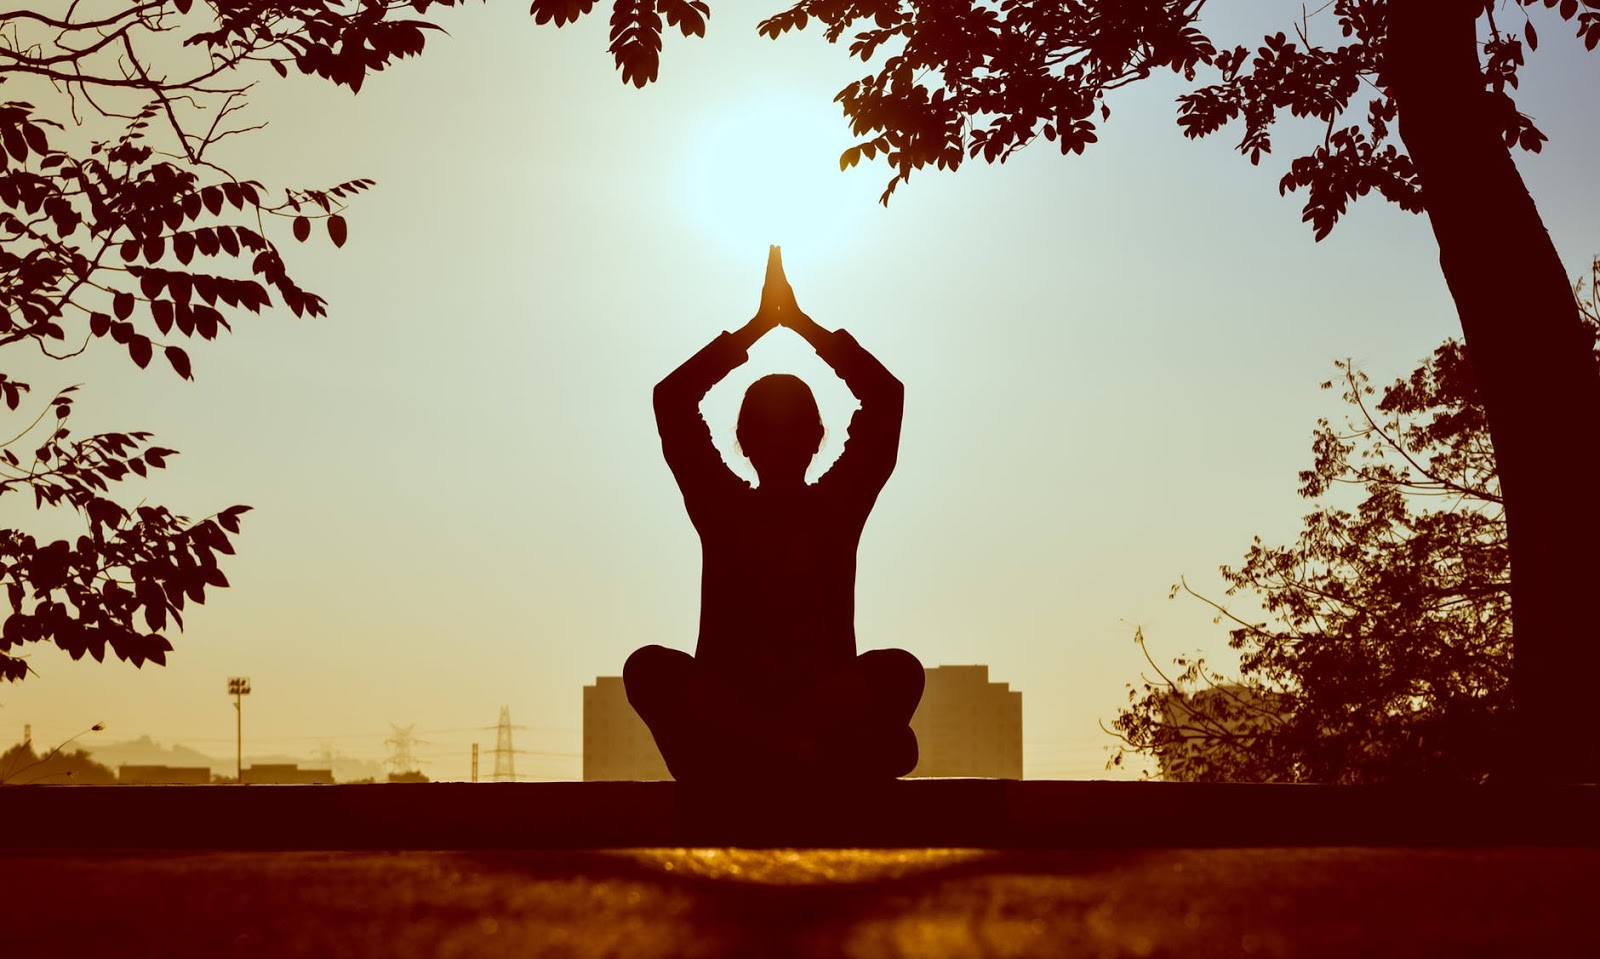 A woman sits in a meditative pose outdoors and facing towards the sun.